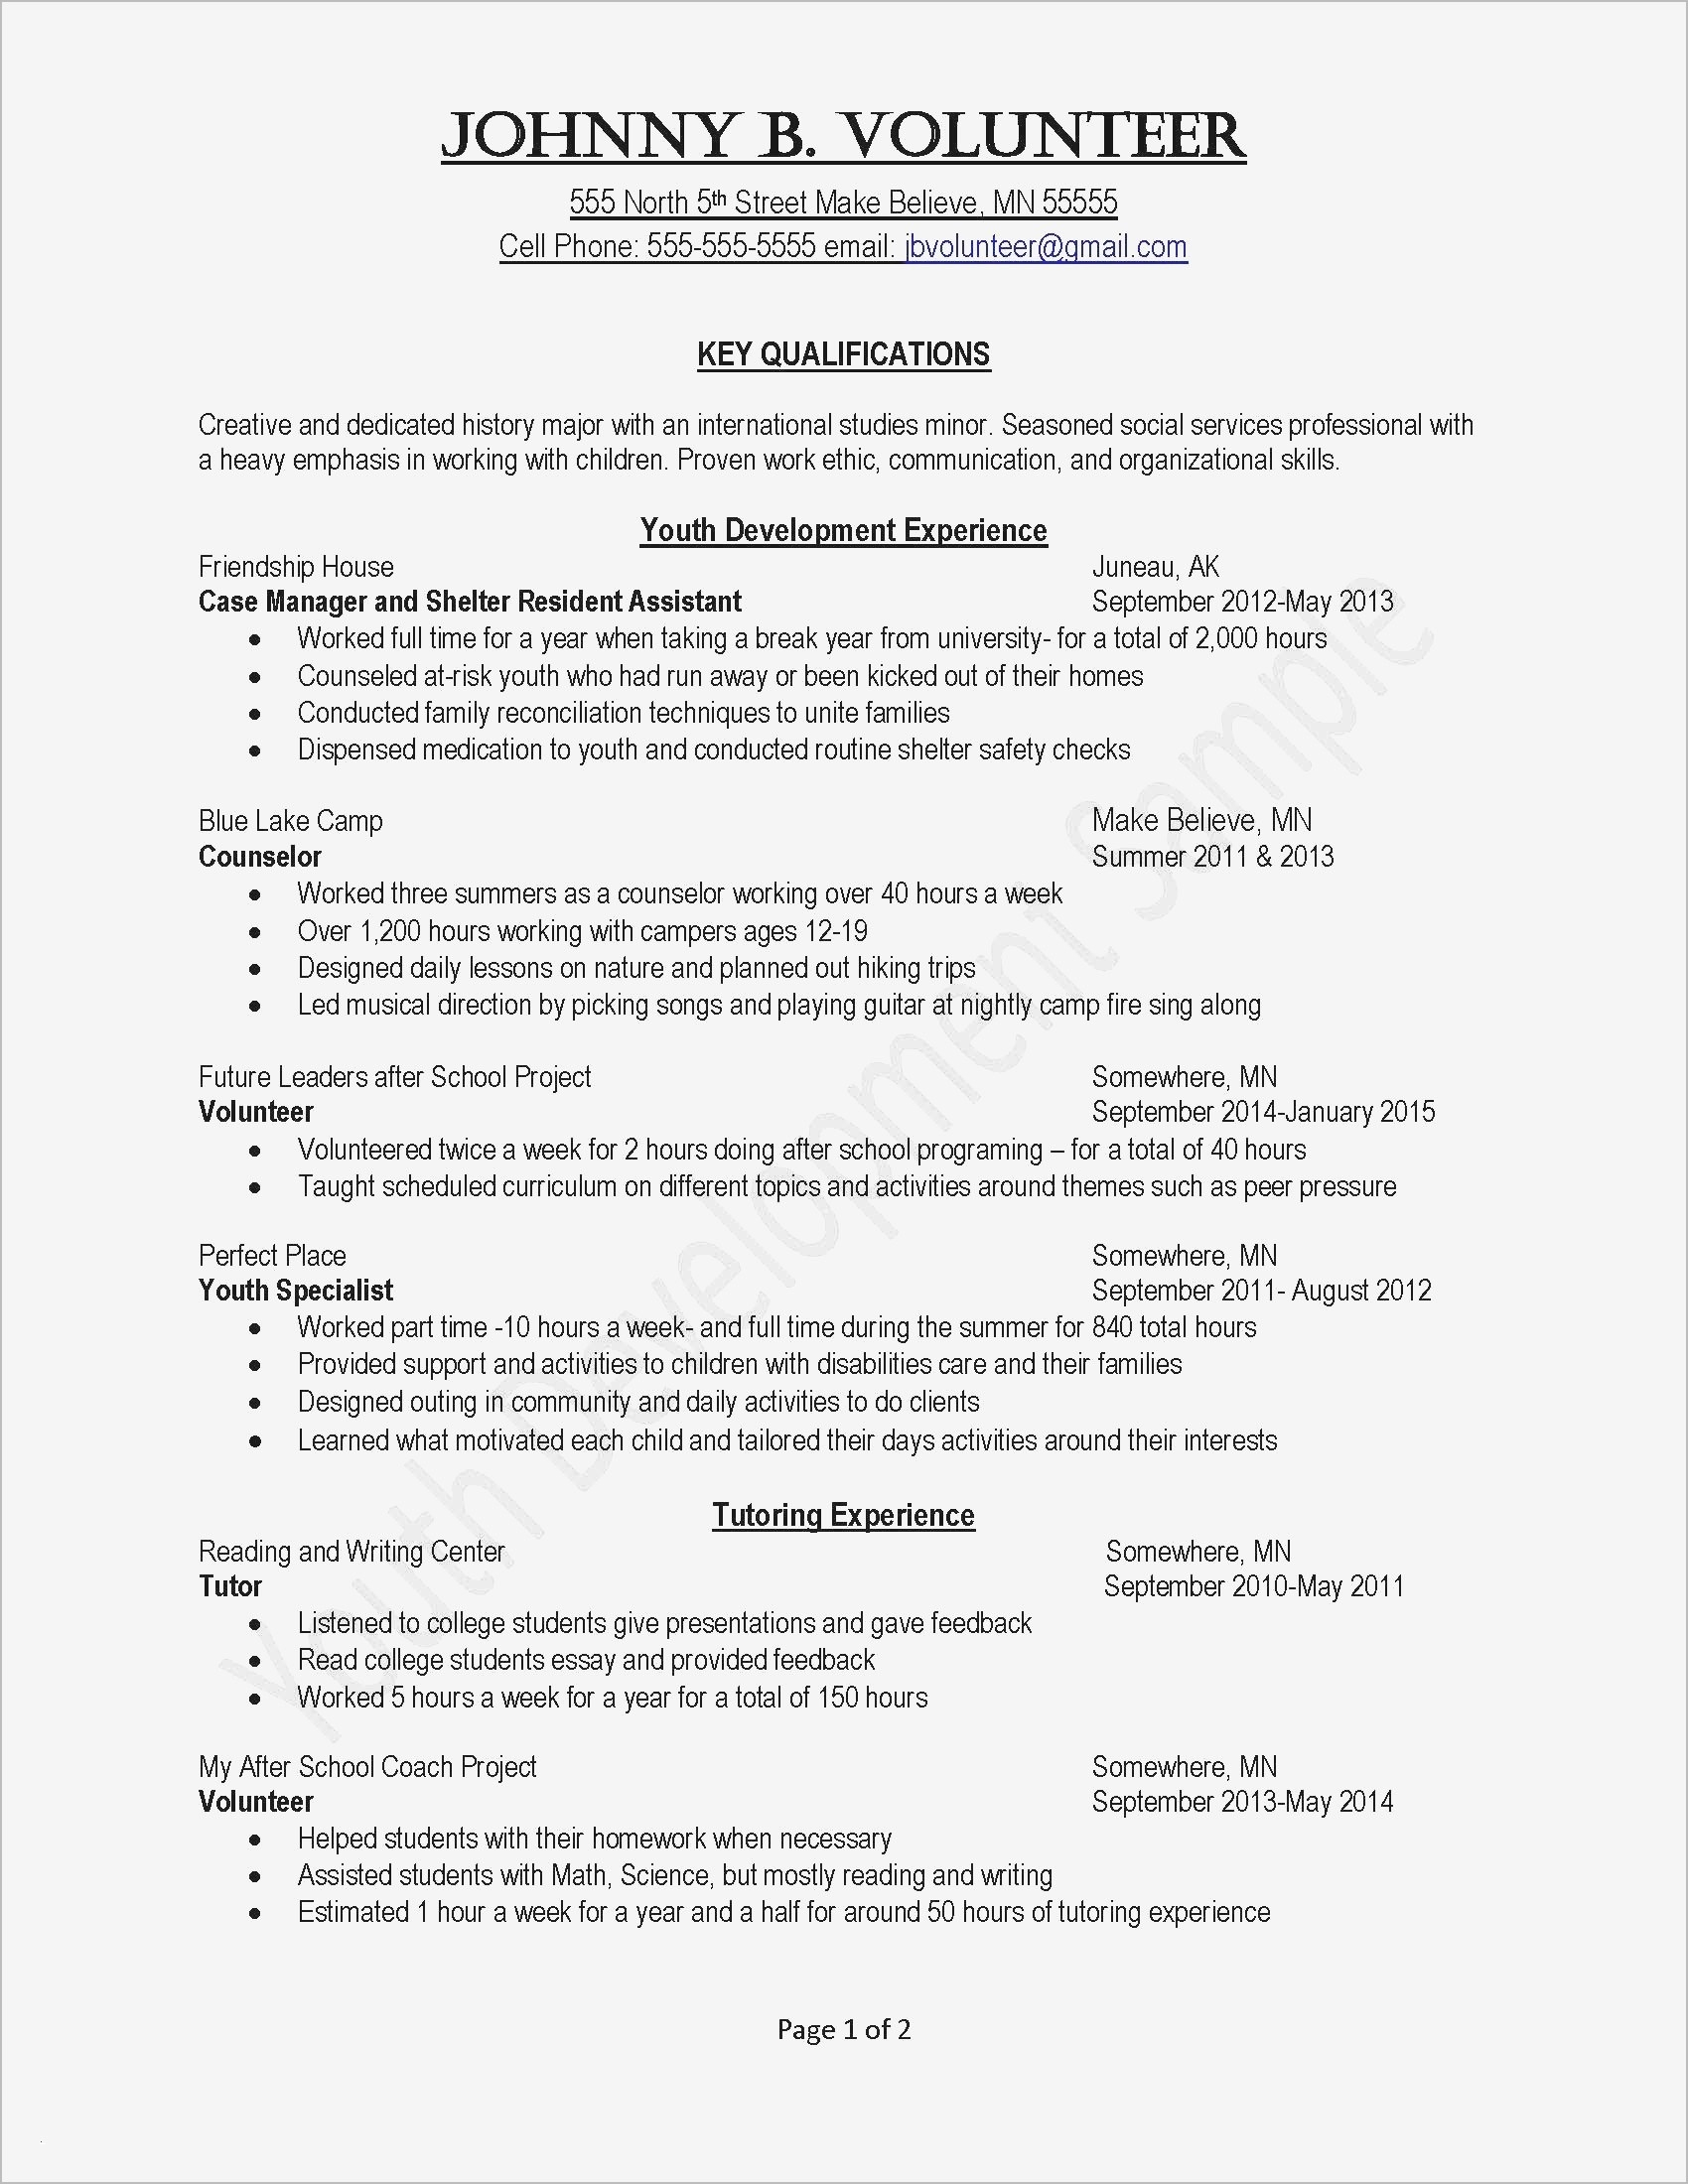 Resume Template for Undergraduate Student - 20 Inspirational Resume Template College Student Langkawi Land